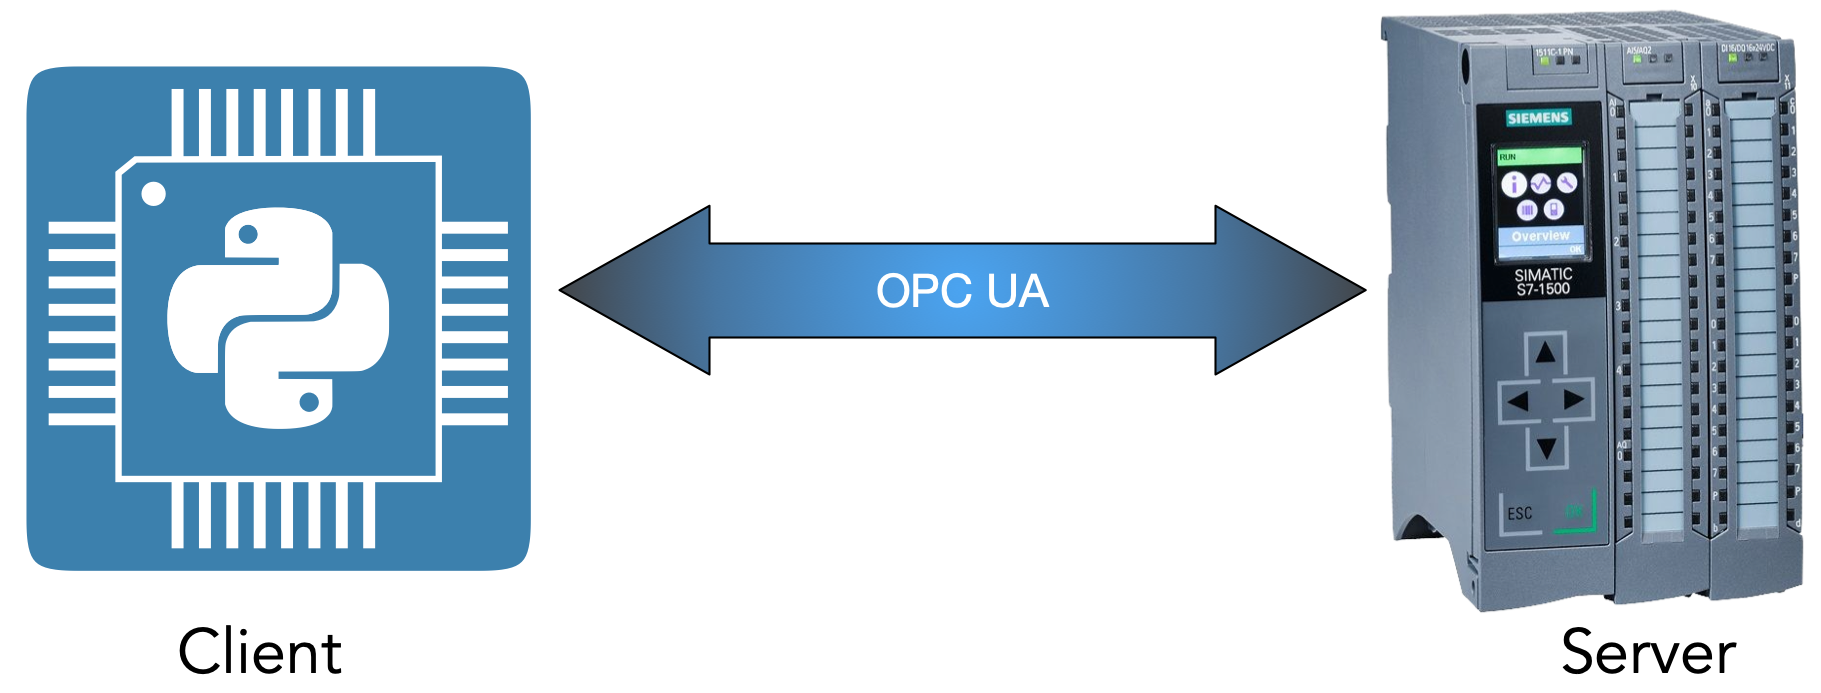 simatic s7 1500: communication with python application using opc ua